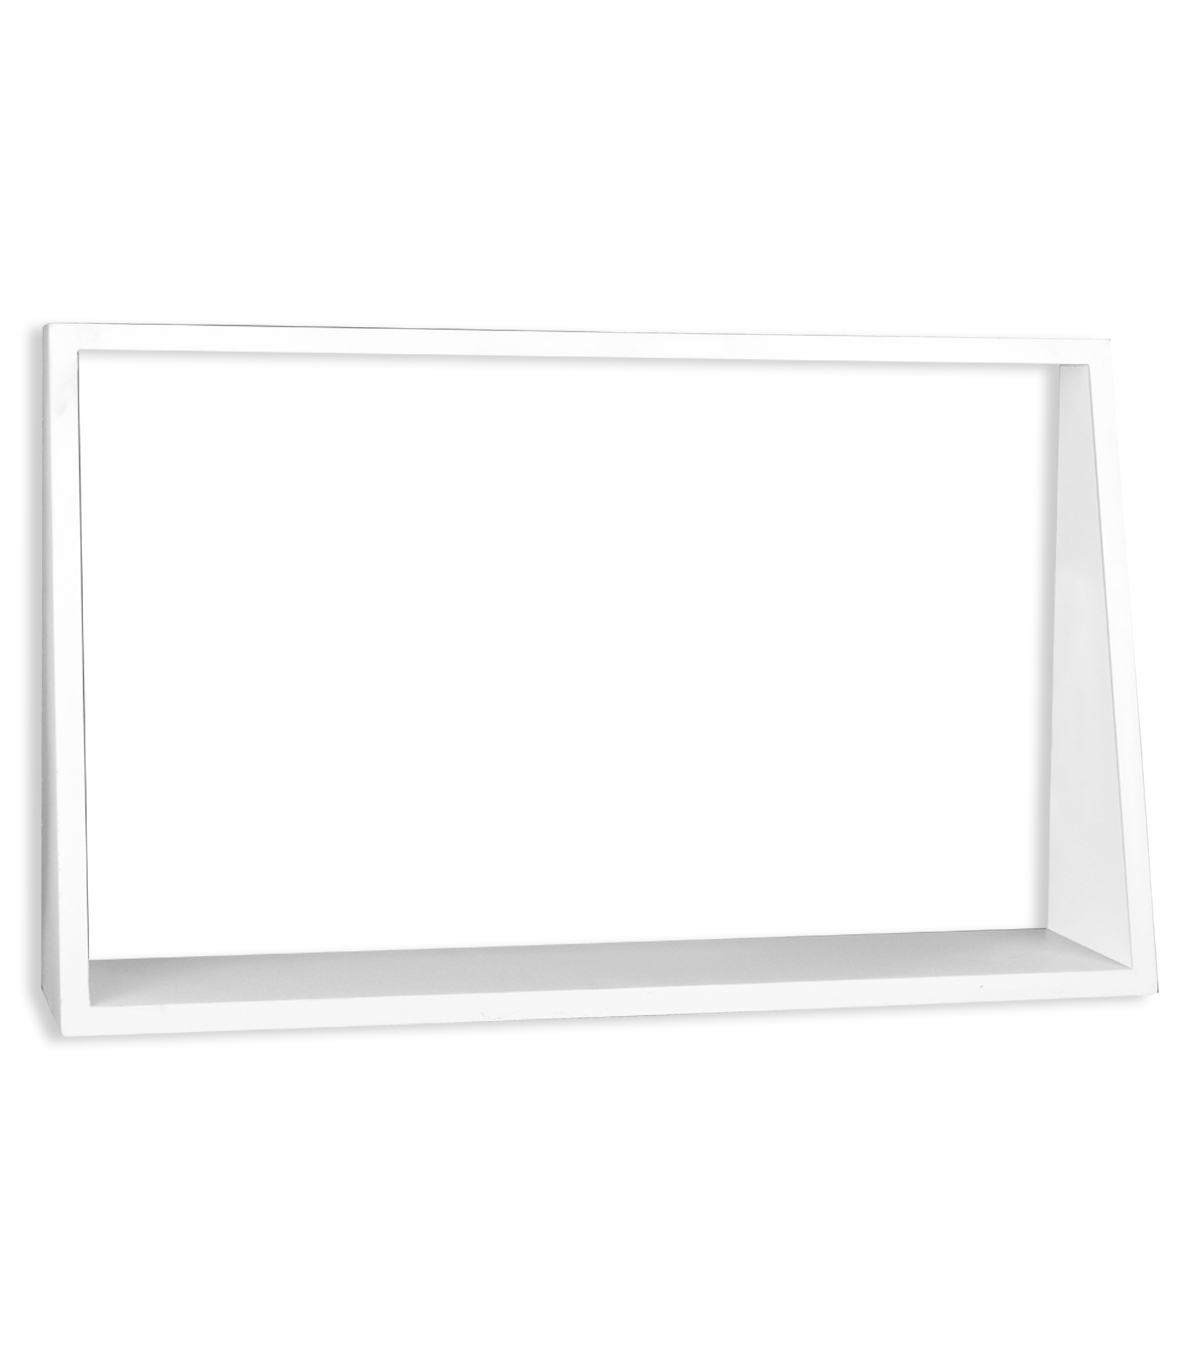 Large Rectangular Wall Shelf-White